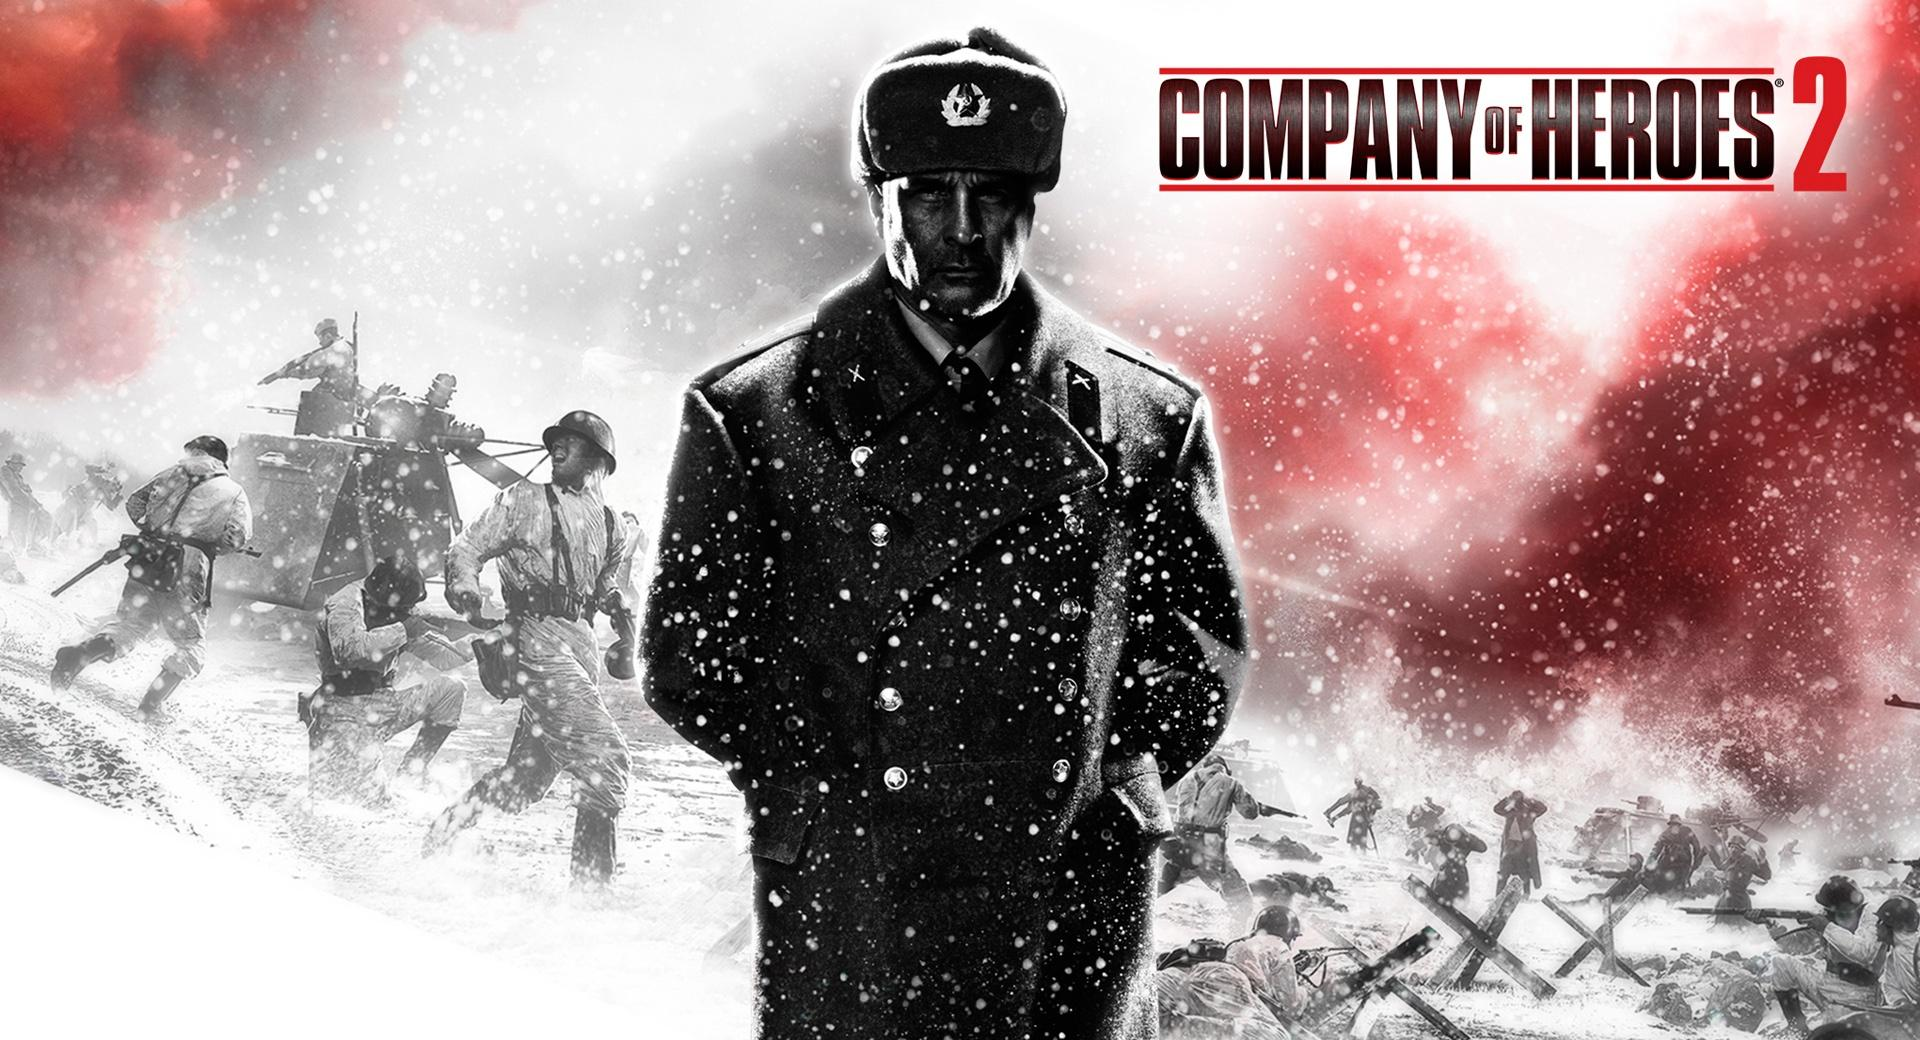 2013 Company of Heroes 2 wallpapers HD quality